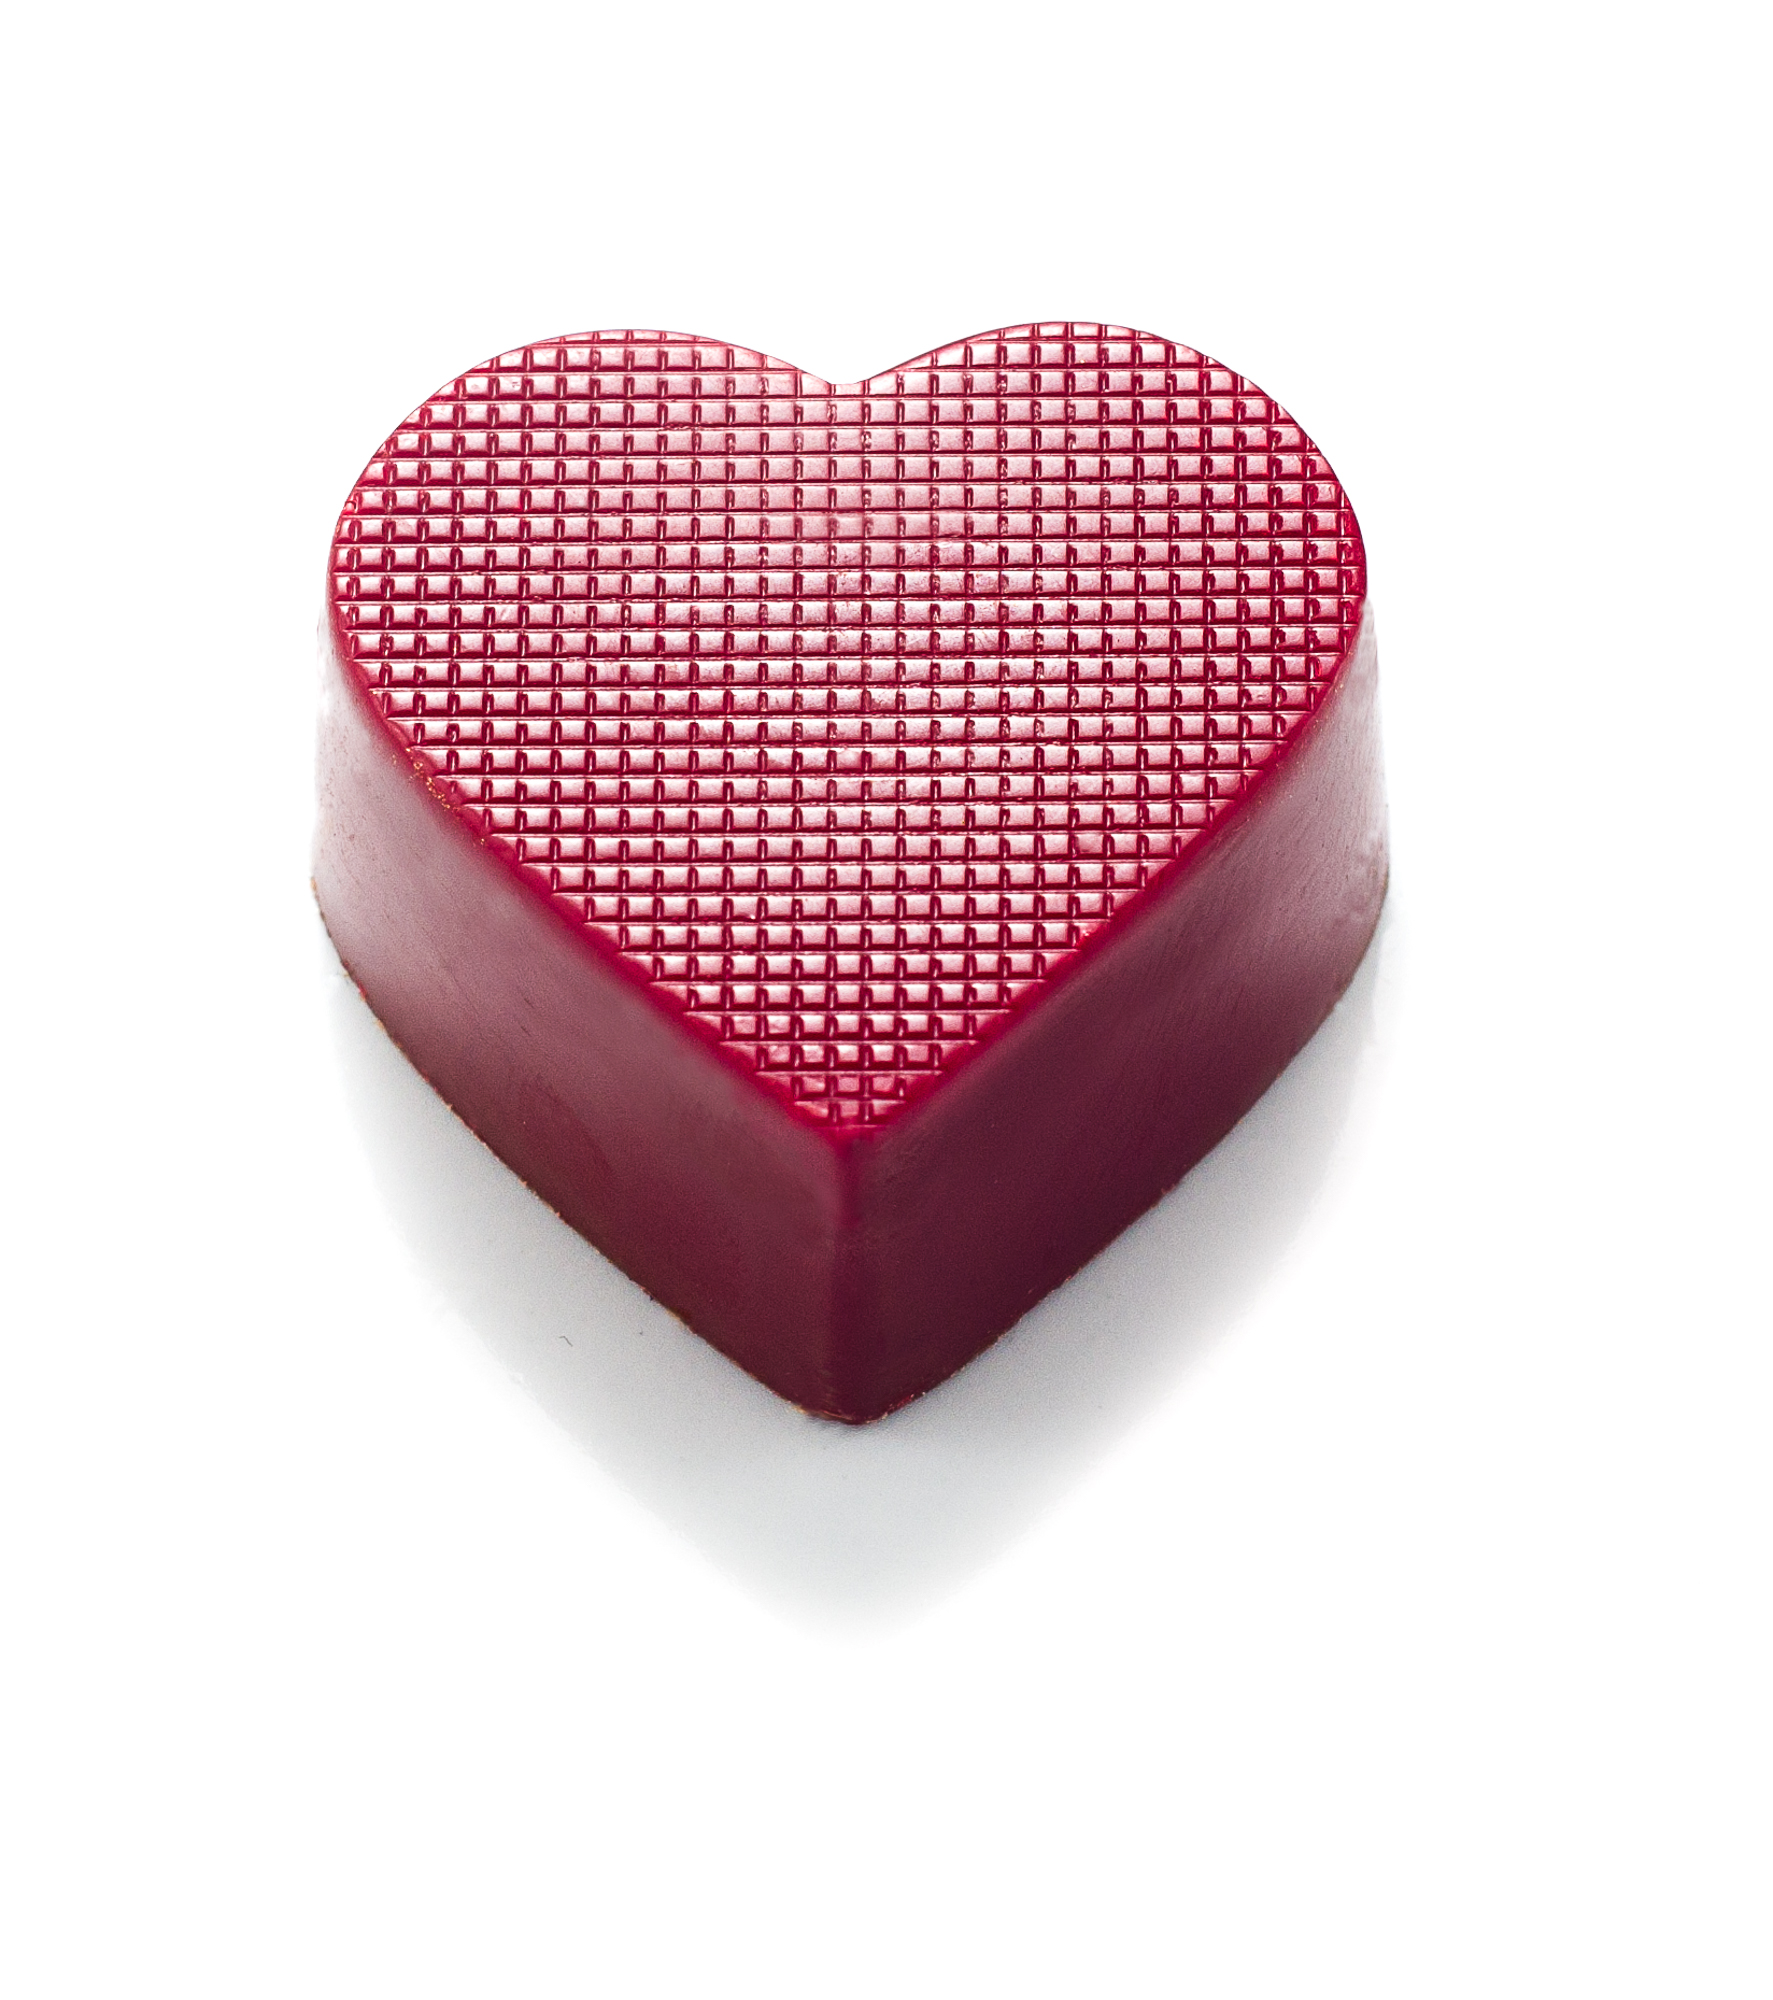 <b>SWEET HEART</b><P ALIGN=Left>Milk chocolate casing with a milk chocolate raspberry ganache</P>